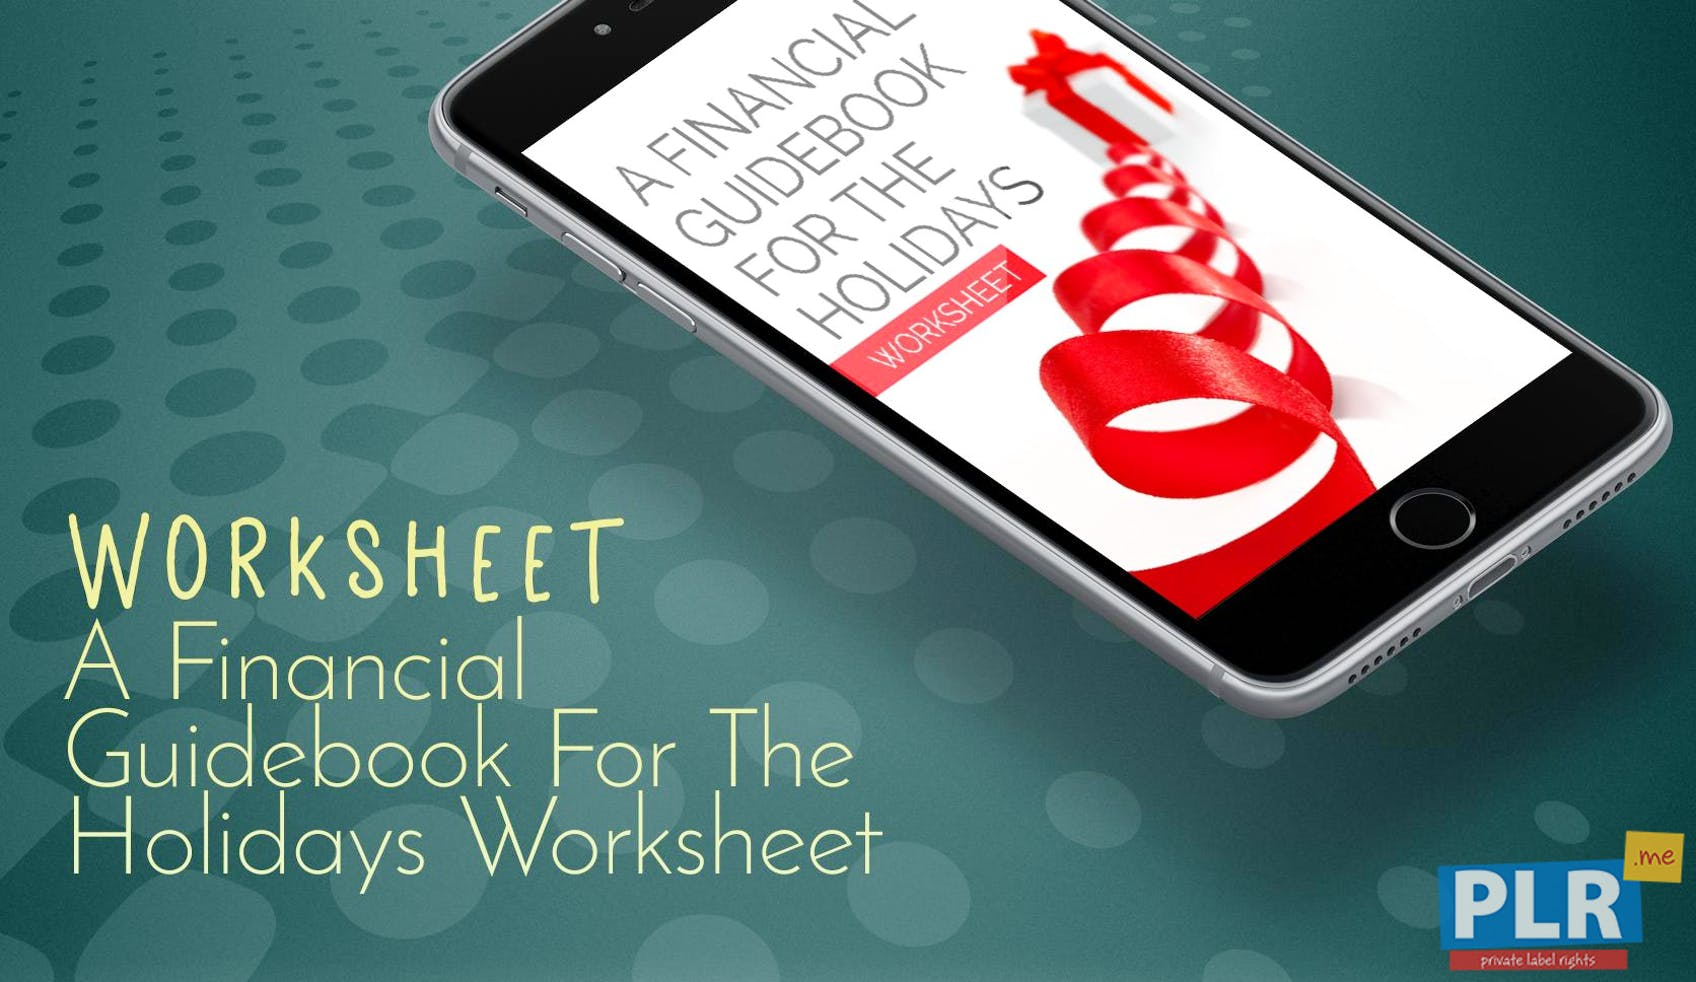 PLR Worksheets - A Financial Guidebook For The Holidays Worksheet ...